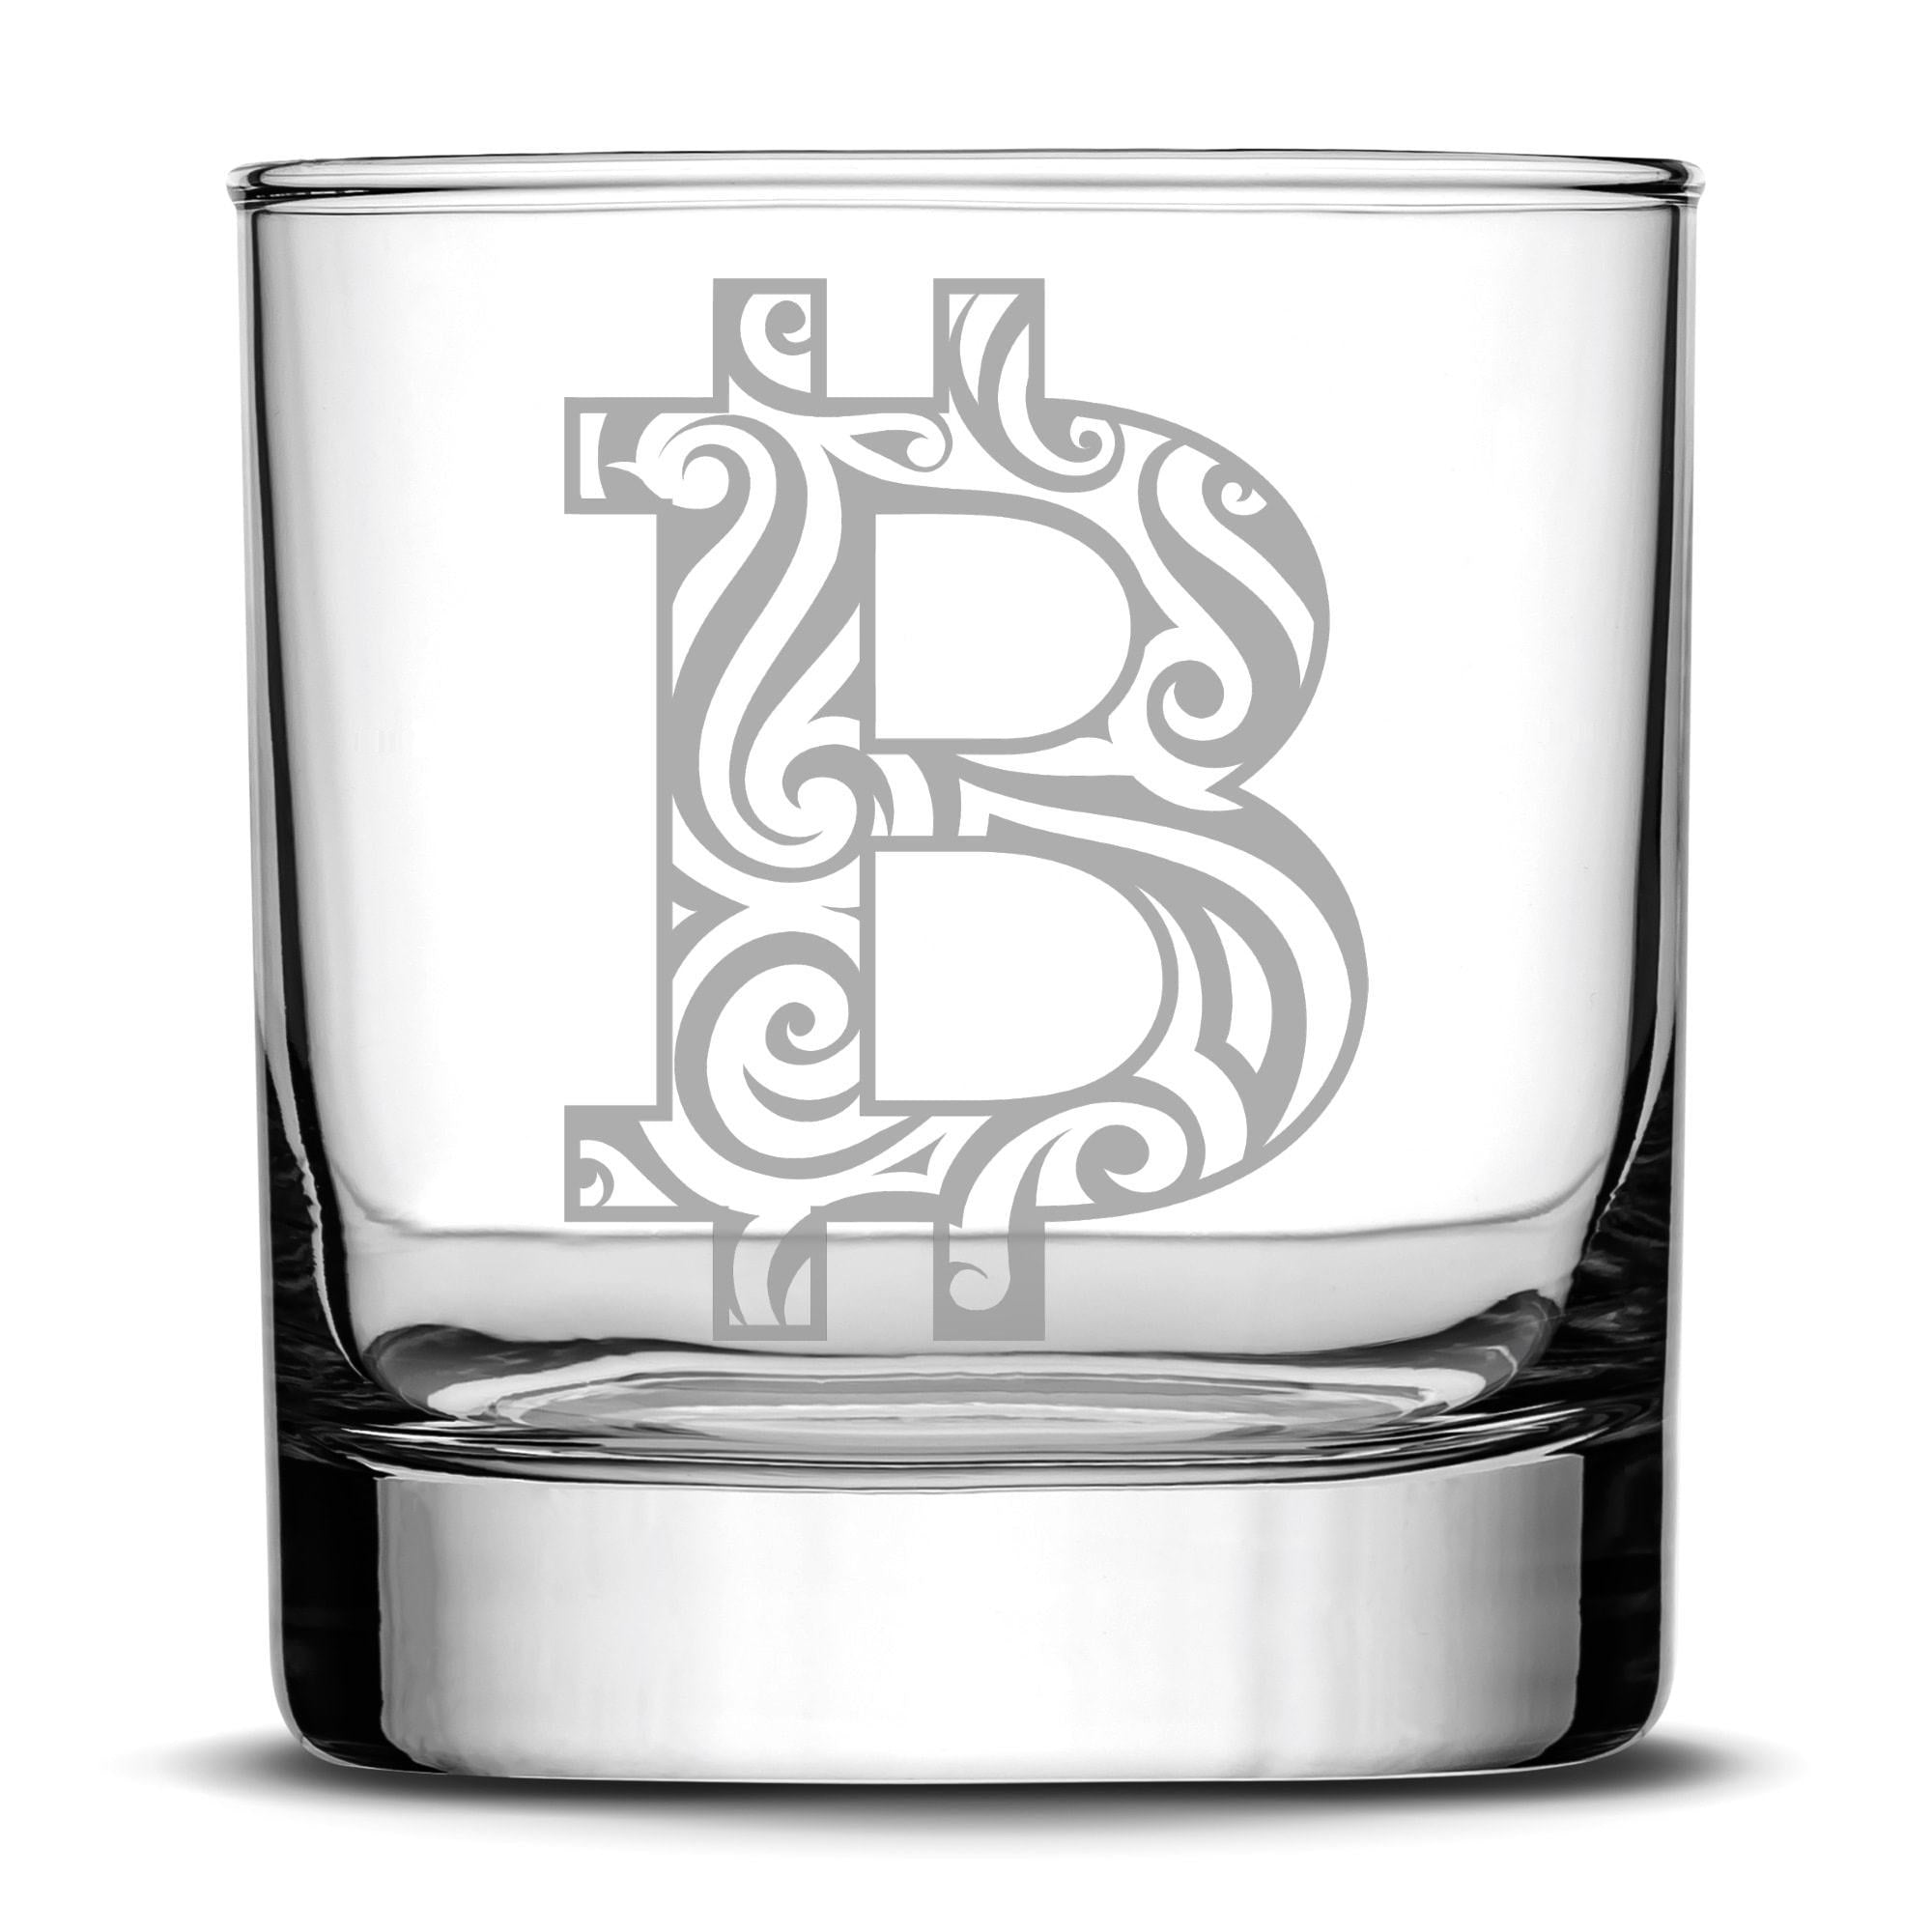 Premium Tribal Bitcoin Whiskey Glass, 10oz Deep Etched Rocks Glass, Made in USA by Integrity Bottles